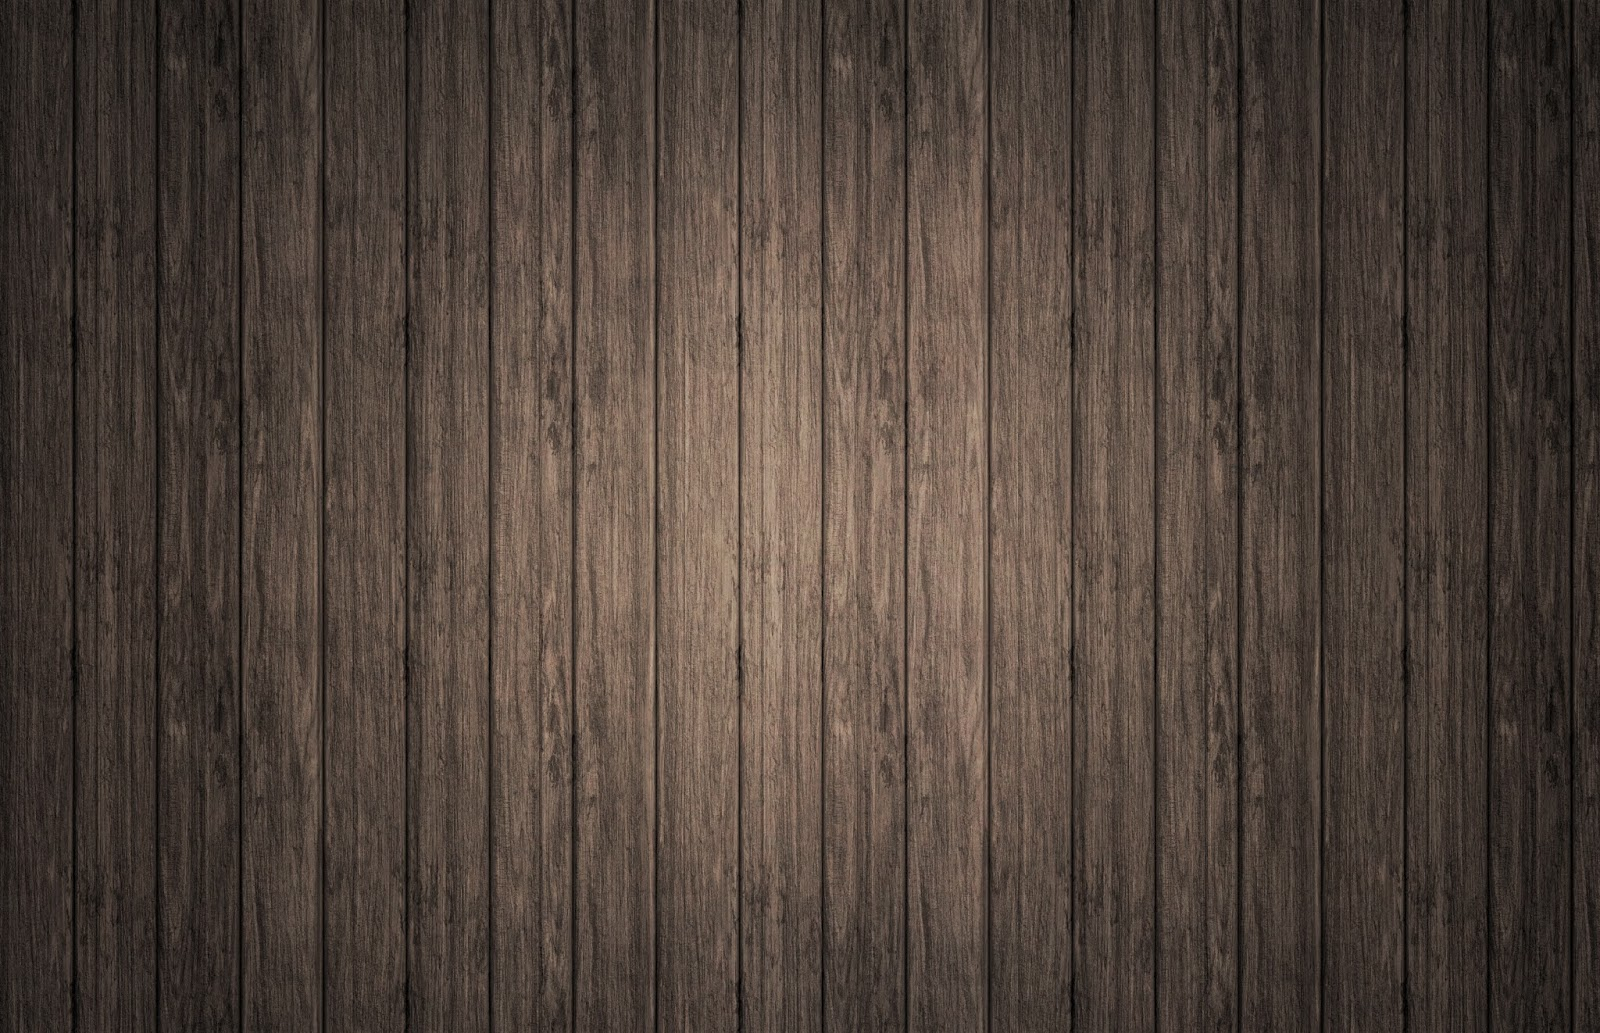 Dark textured background design patterns website images hd psd wooden background texture pattern images for website hd toneelgroepblik Image collections